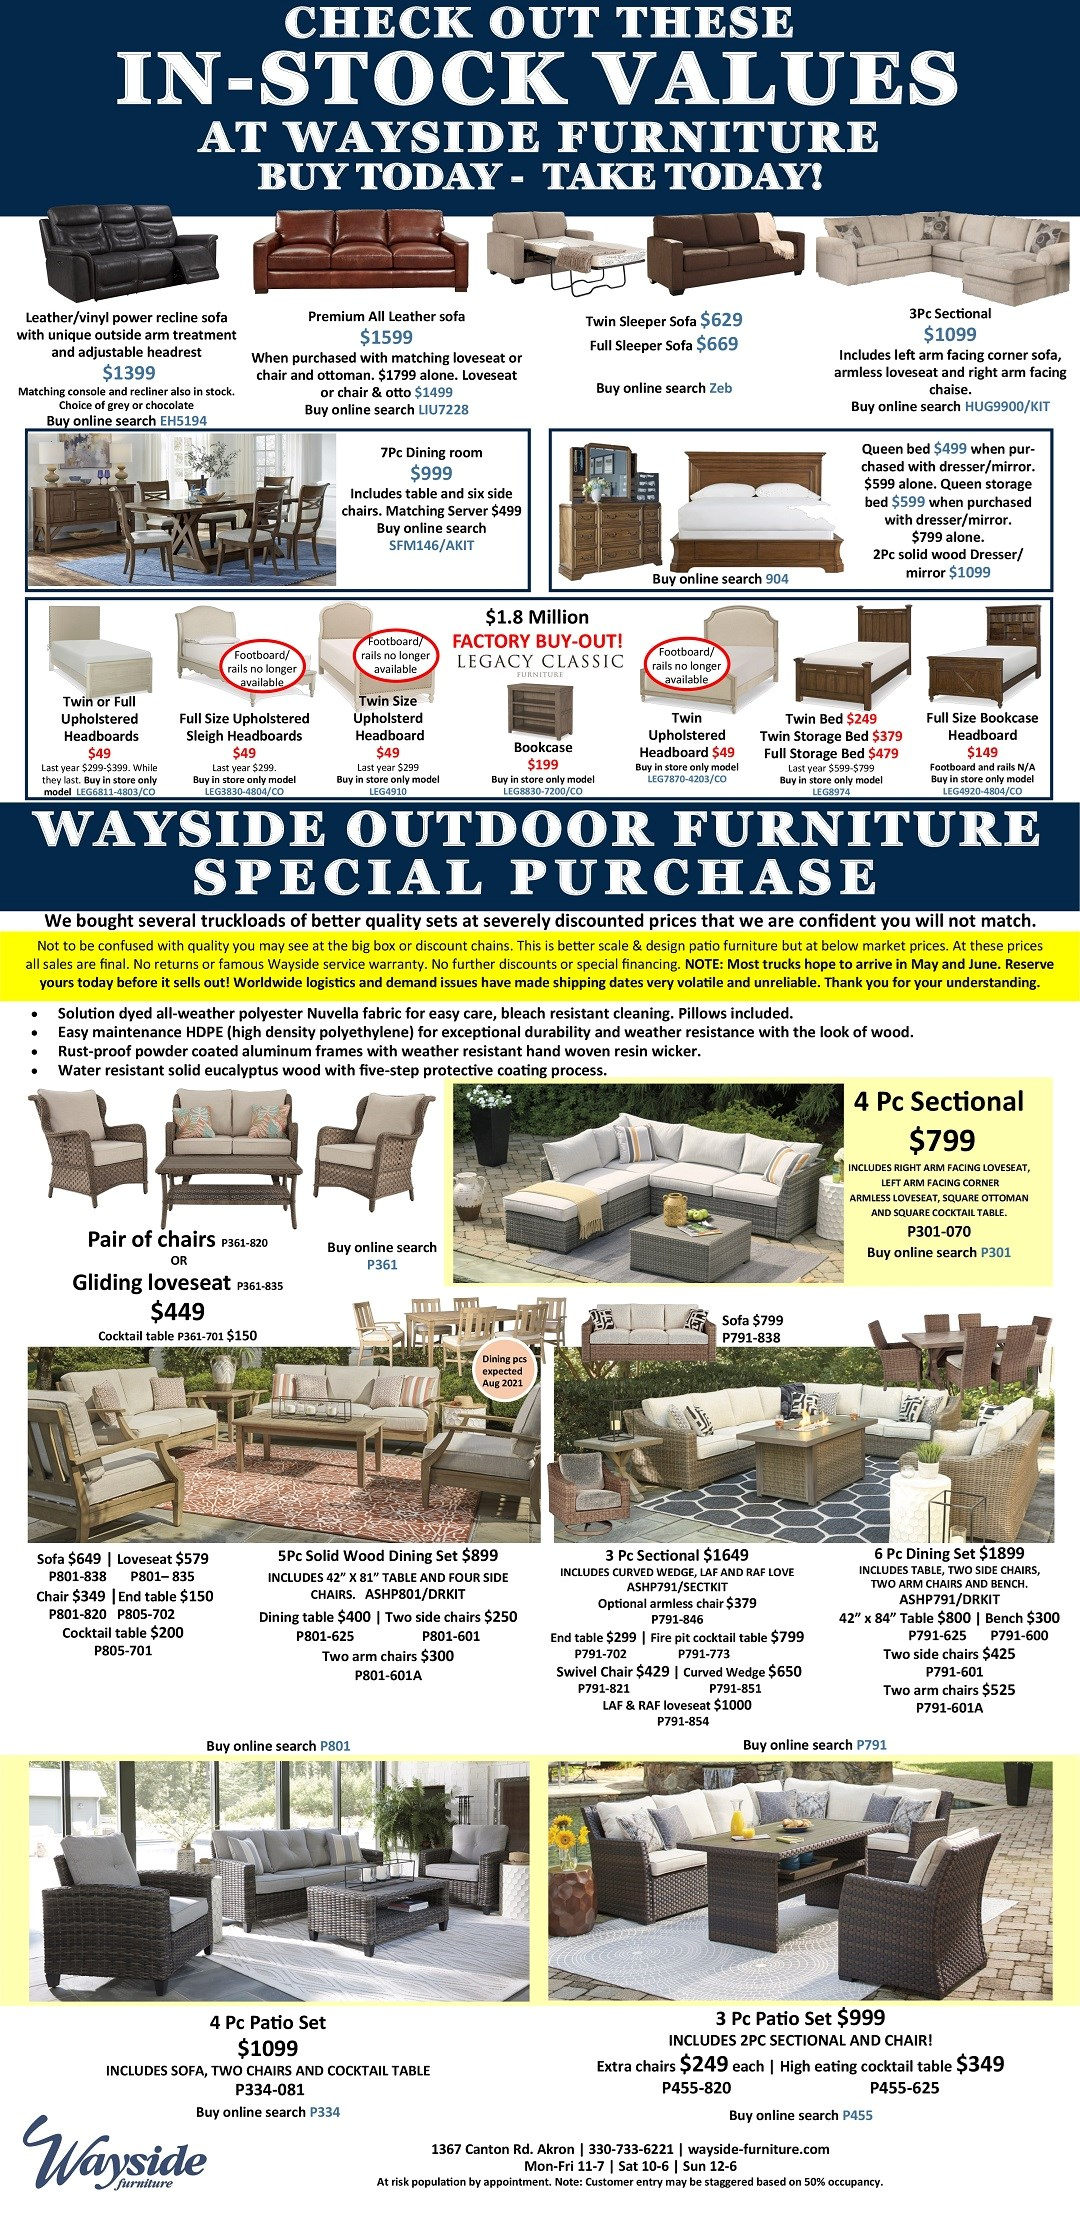 Check out these in stock values at Wayside Furniture buy today take today!